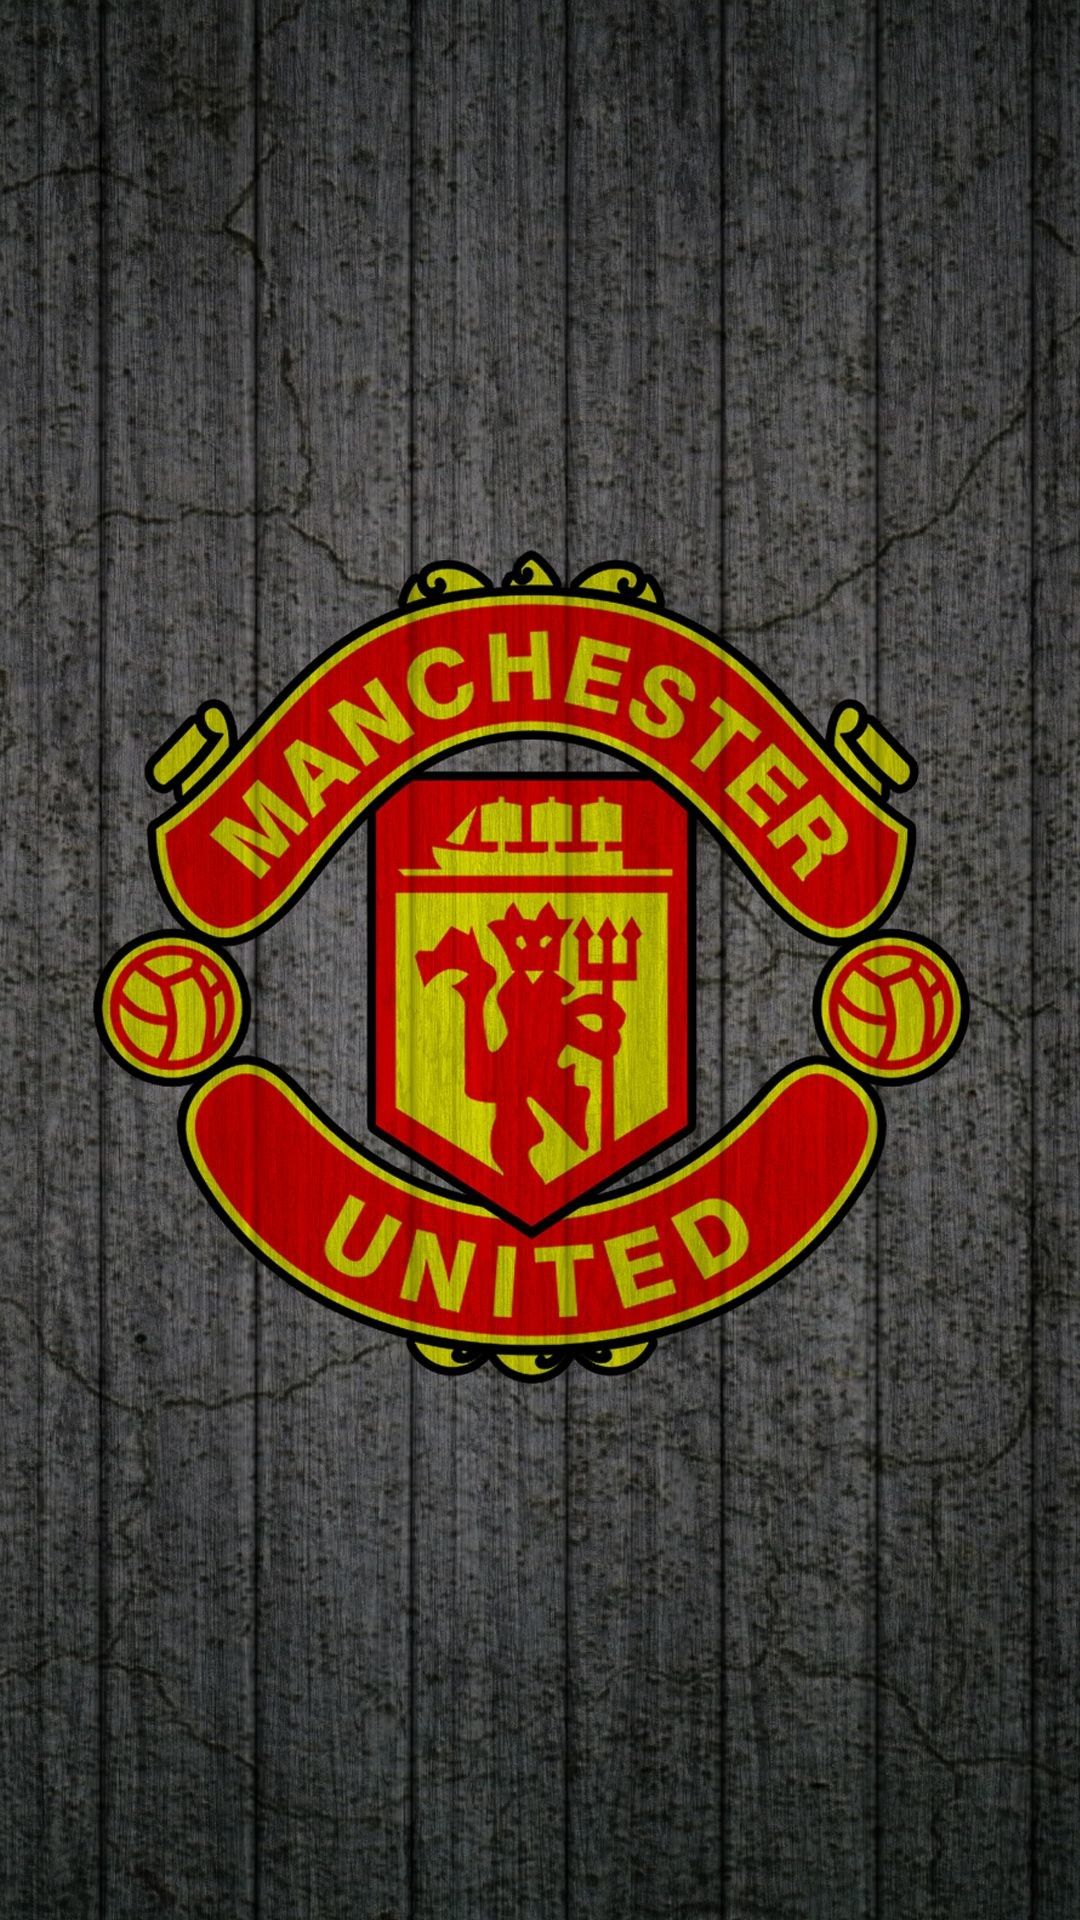 71 Man Utd Wallpapers On Wallpaperplay Manchester United Wallpaper Manchester United Logo Manchester United Art